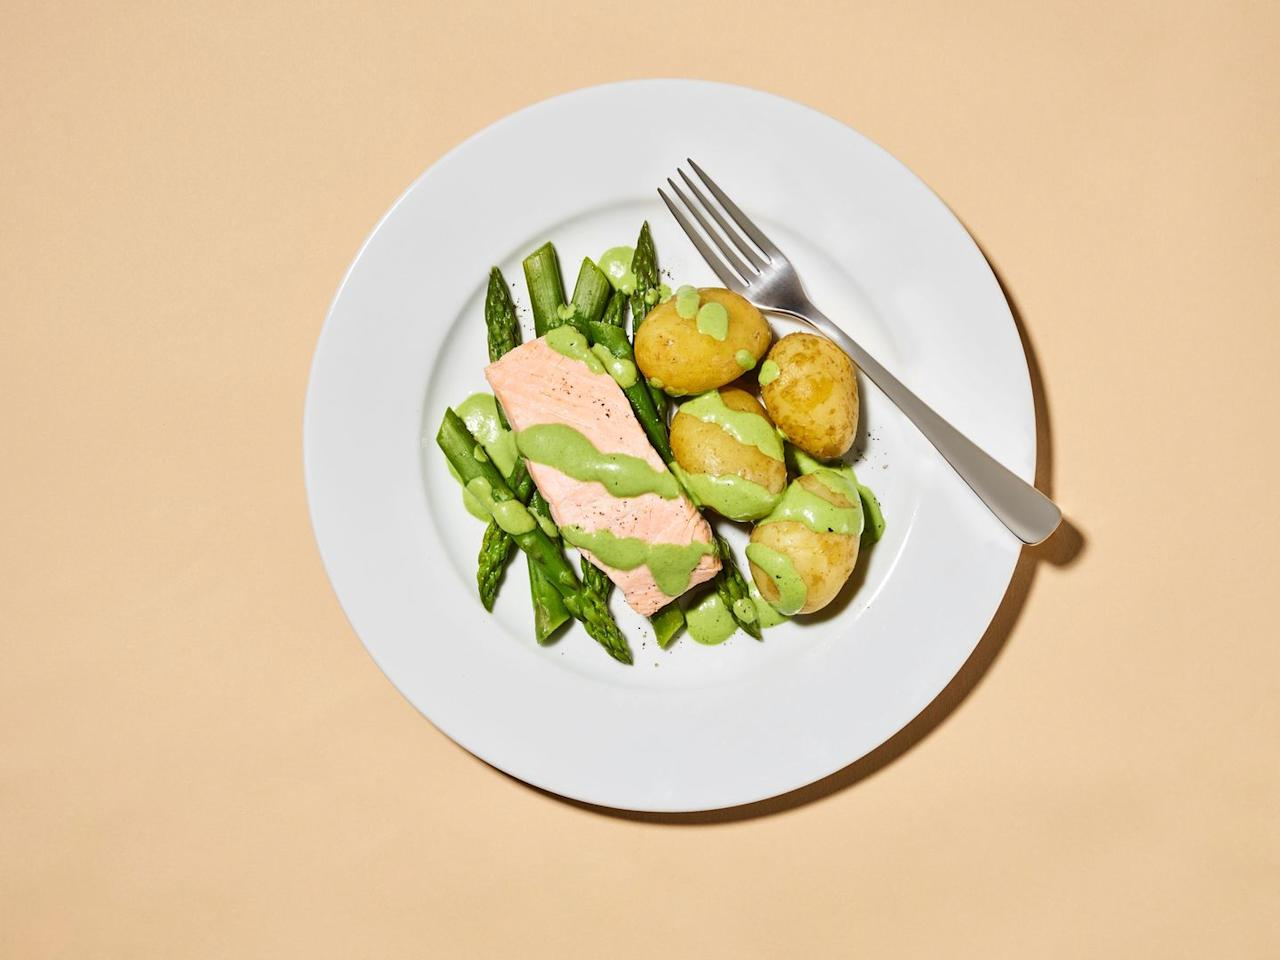 <p>If you're forever finding gungy watercress, seriously pongy salmon and long-gone crème fraîche from, er, two weeks ago in your fridge...</p><p>485 calories - 25g fat - 35g protein - 34g carbs - serves 2.<br></p><p><strong>Ingredients</strong><br>- 500ml whole milk<br>- 2 bay leaves<br>- 1 tsp black peppercorns<br>- 350g Jersey Royal potatoes<br>- 4 salmon fillets<br>- 75g watercress<br>- 2-3 tsp horseradish cream<br>- 150ml crème fraîche<br>- Salt and pepper<br>- 200g asparagus</p><p><strong>Method</strong></p><ol><li>Put the milk, bay leaves and peppercorns in a saucepan (ironically, a milk pan won't do–it needs to be big enough to fit the salmon in) and place it over a gentle heat. You can put the potatoes on to boil now, too – they'll take the same amount of time as the salmon.</li><li>Milk simmering? Carefully drop the salmon fillets in and leave them to poach gently for 10 mins. Meanwhile, get saucy. Grab a blender and chuck in the watercress, horseradish cream and crème fraîche. Blitz until smooth, then season to taste.</li><li>Next, steam the asparagus spears until just tender (2-4 mins depending on their girth – any longer and they go a bit flaccid).</li><li>Use a slotted spoon to lift the salmon fillets out of the poaching liquid – two on to dinner plates (or one on to a plate, one into a food container for lunch tomorrow) and set the other two aside to cool. Don't chuck the poaching milk – you'll need that to make the tart opposite.</li><li>Serve with the potatoes and asparagus and artfully drizzle over half of the sauce, saving the rest for (you guessed it) the tart.</li></ol>